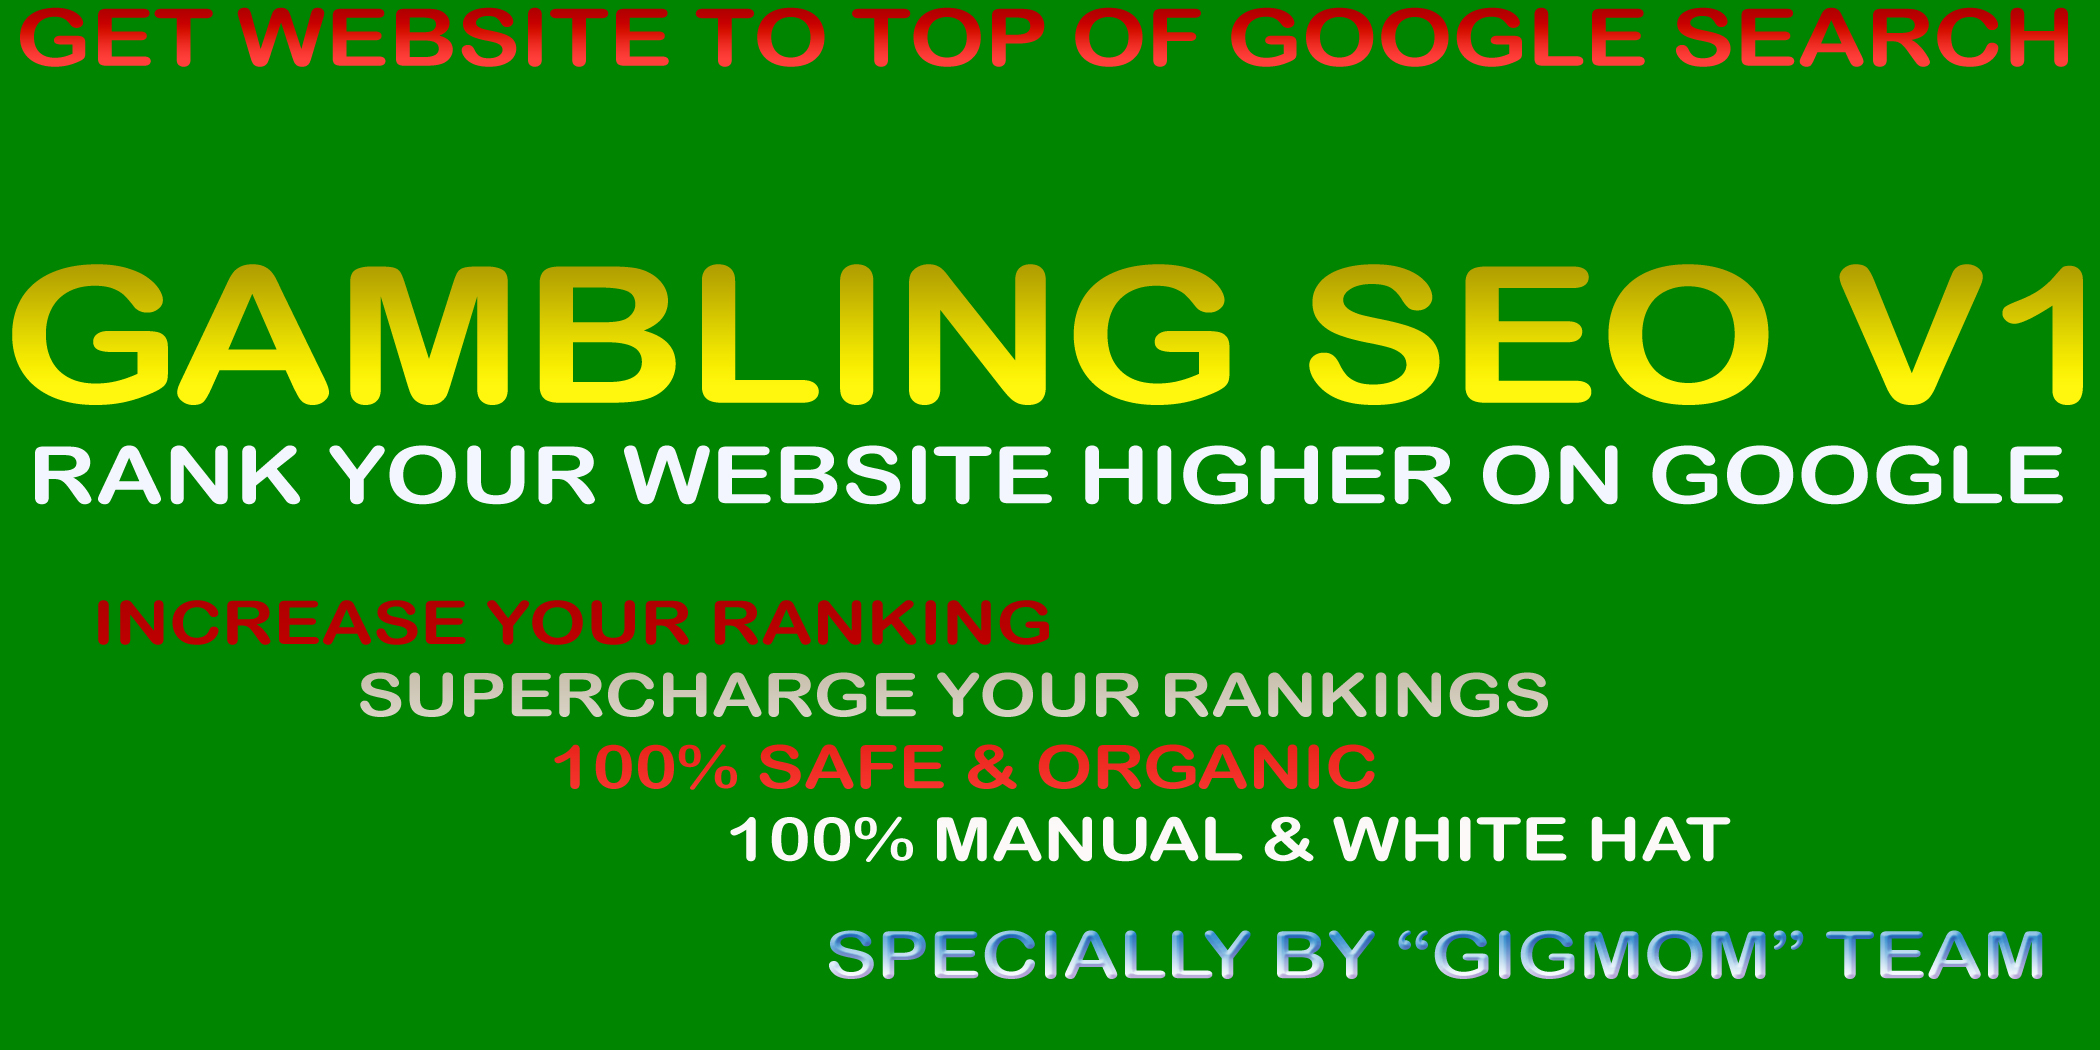 Gambling SEO v1 Rank Your Website Higher On Google